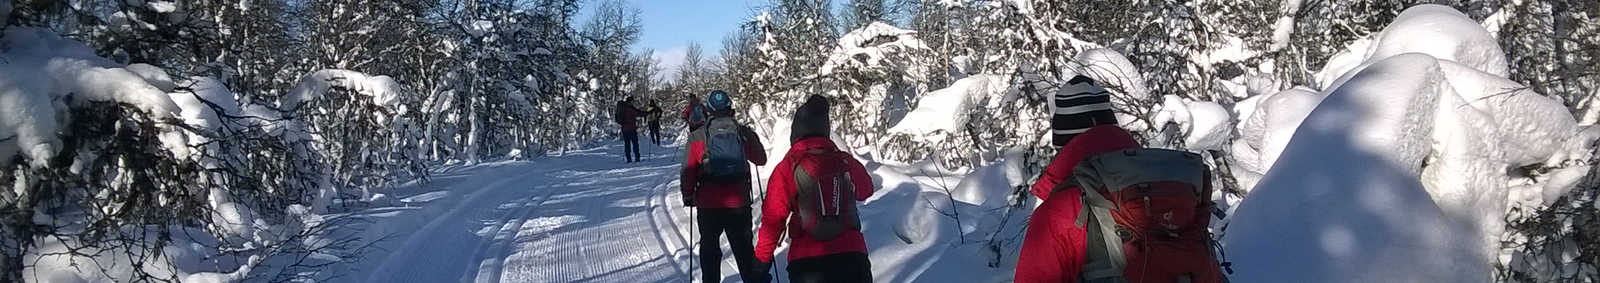 Cross-country skiing in Trimloipe in Venabu mountains